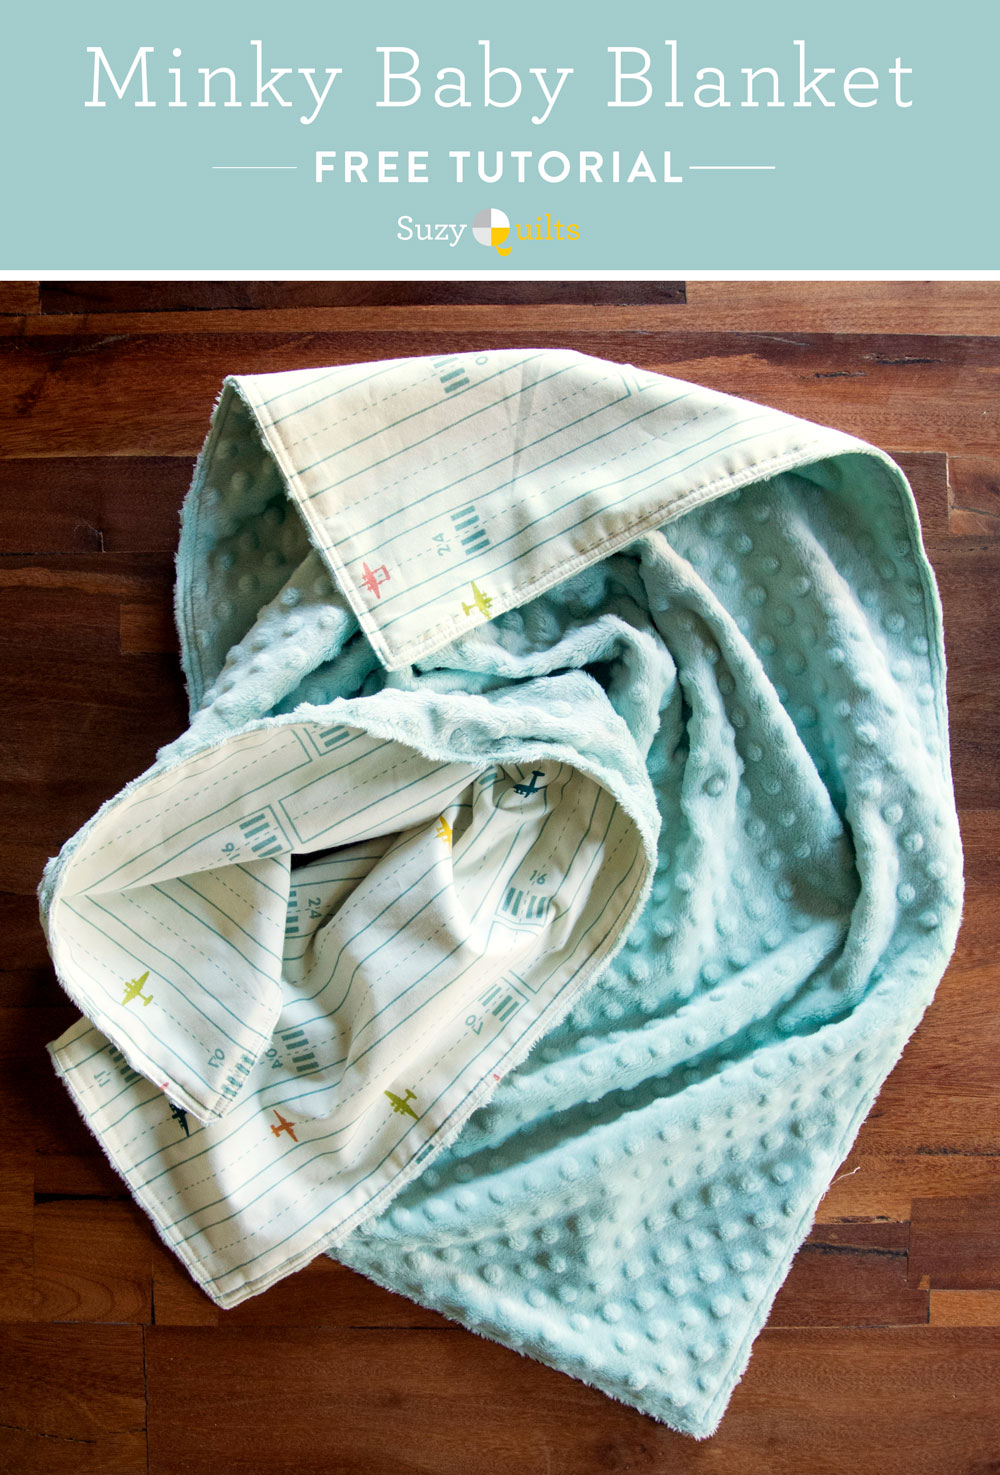 10 Free DIY Sewing Gifts for a New Mom | Suzy Quilts https://suzyquilts.com/free-diy-sewing-gifts-new-momt-tutorial